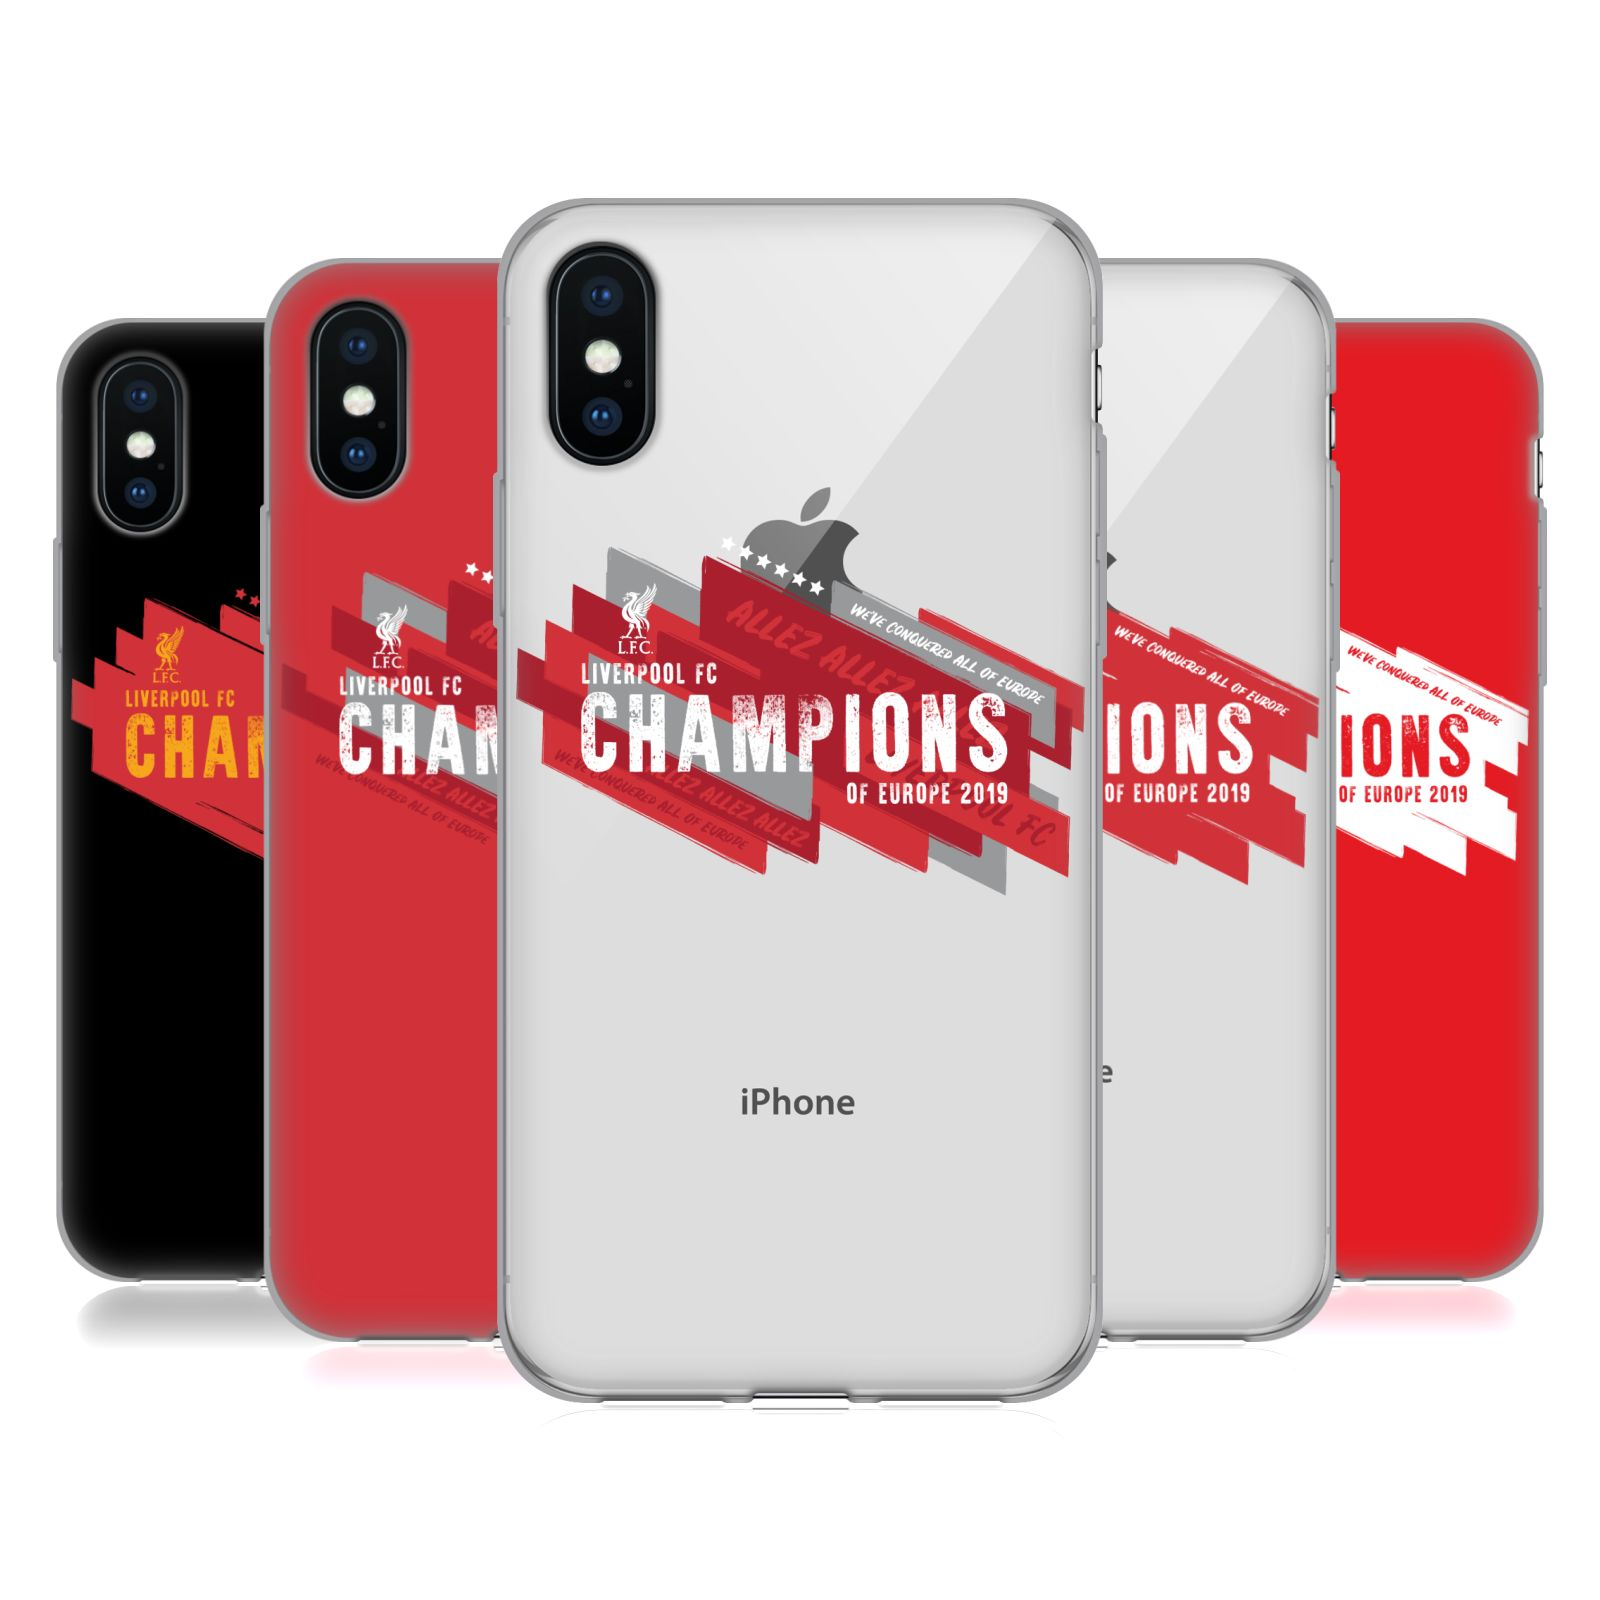 Liverpool Football Club <!--translate-lineup-->2019 Champions<!--translate-lineup-->